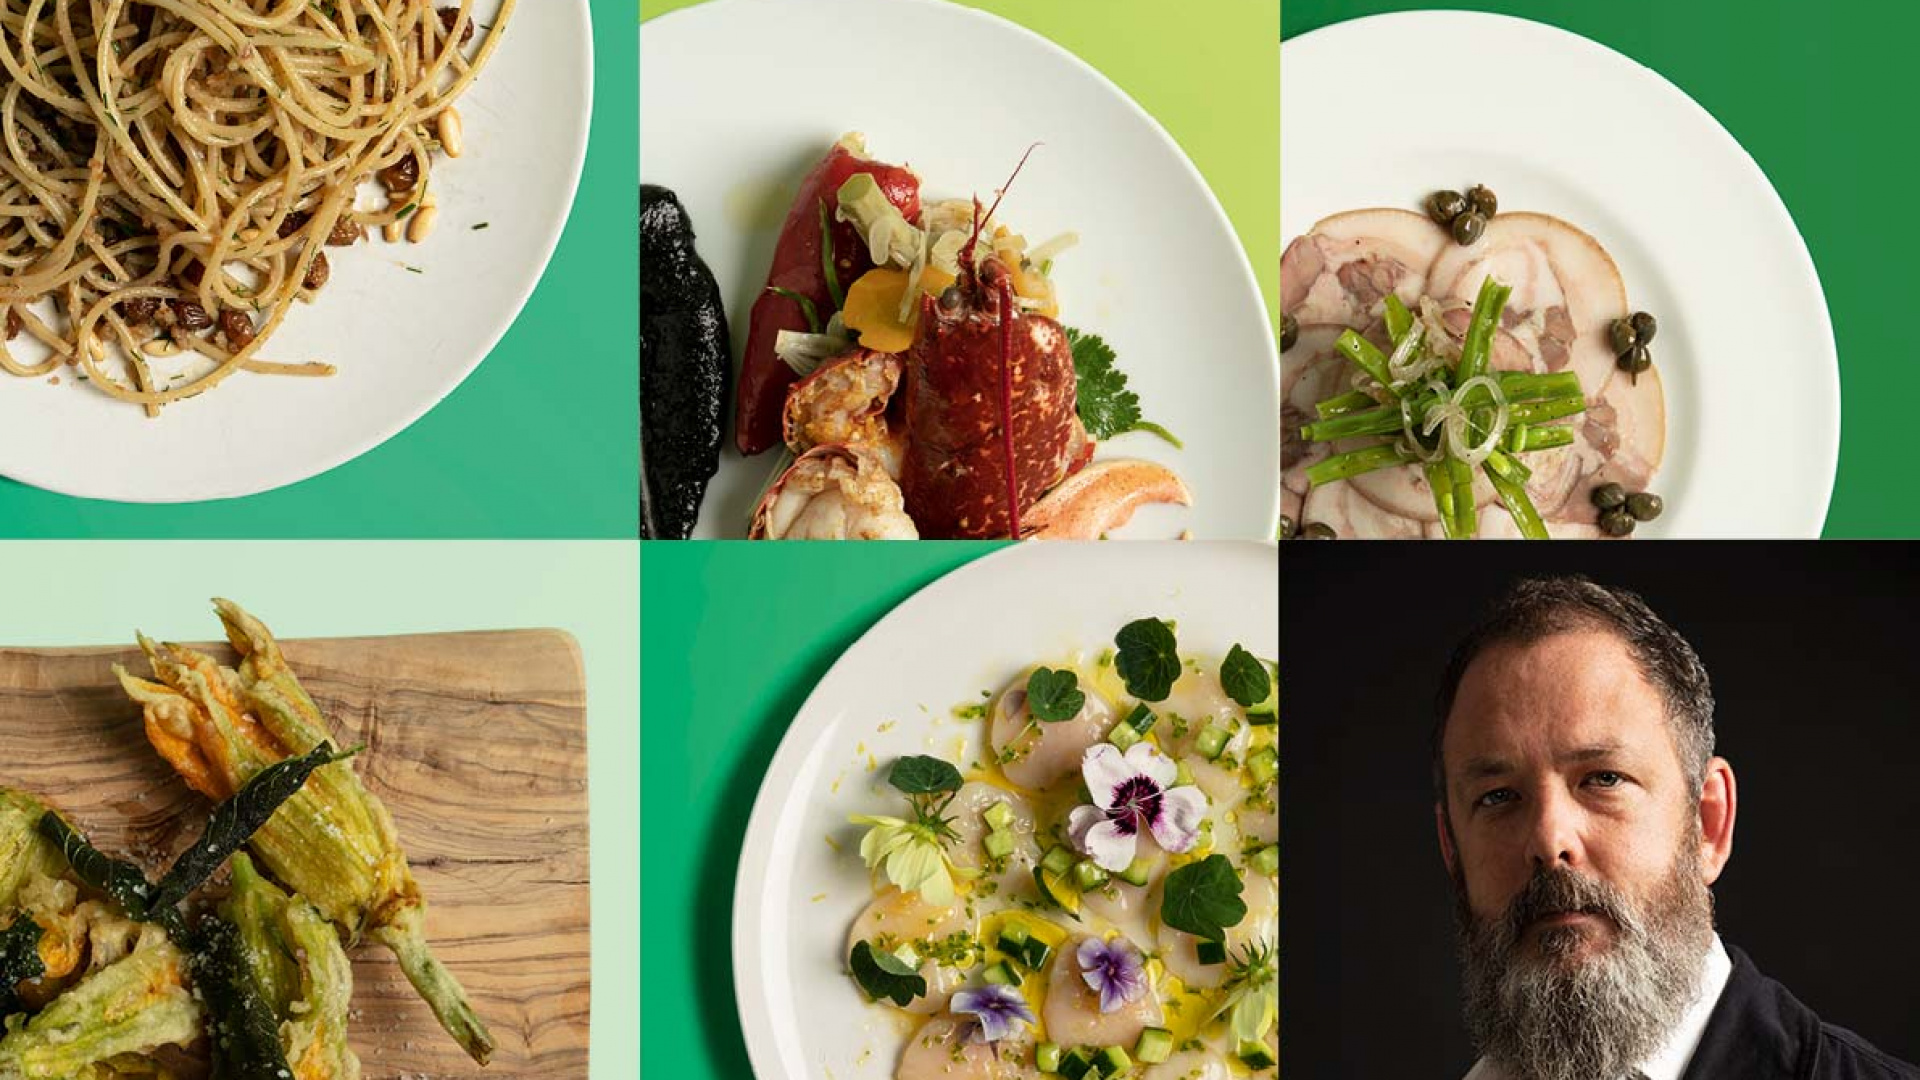 Damian Clisby's career defining dishes